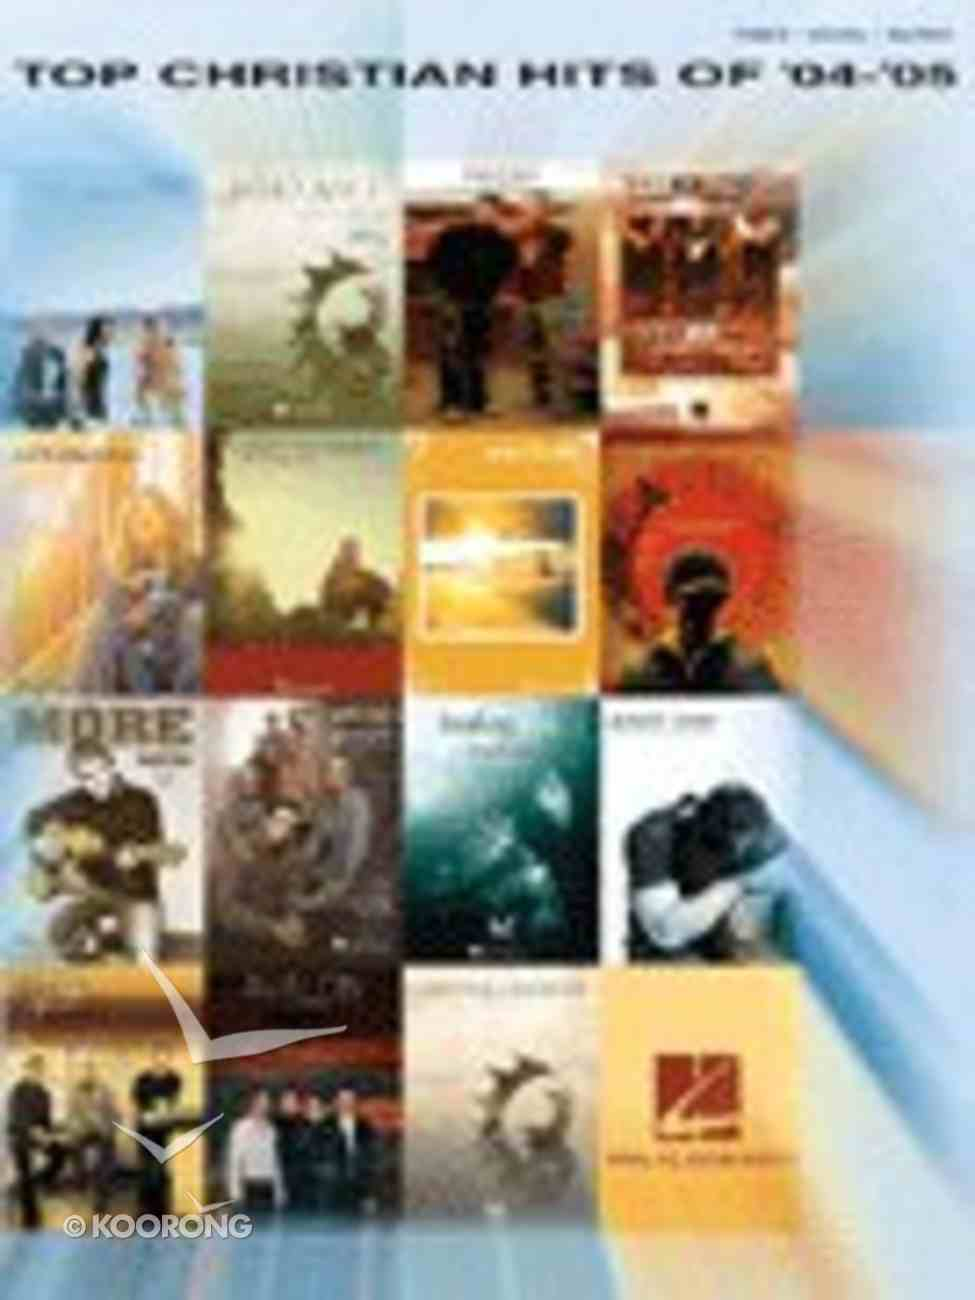 Top Christian Hits of 2004-2005 Paperback